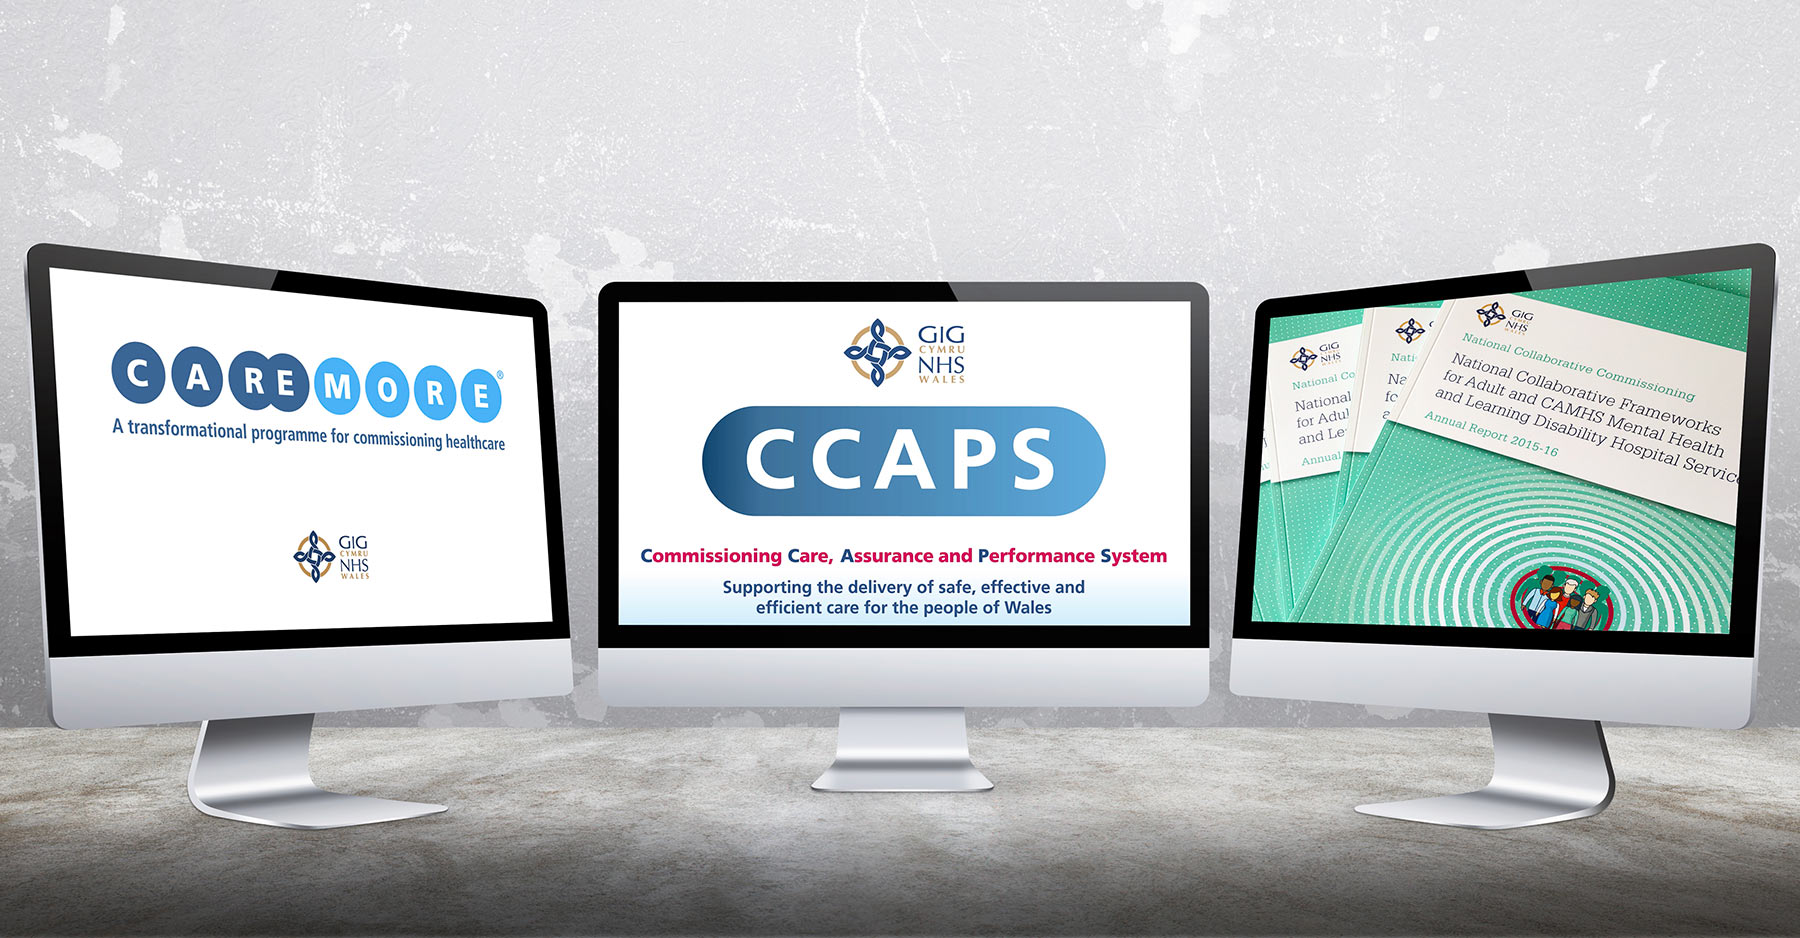 NHS Wales Collaborative Commissioning Unit feature